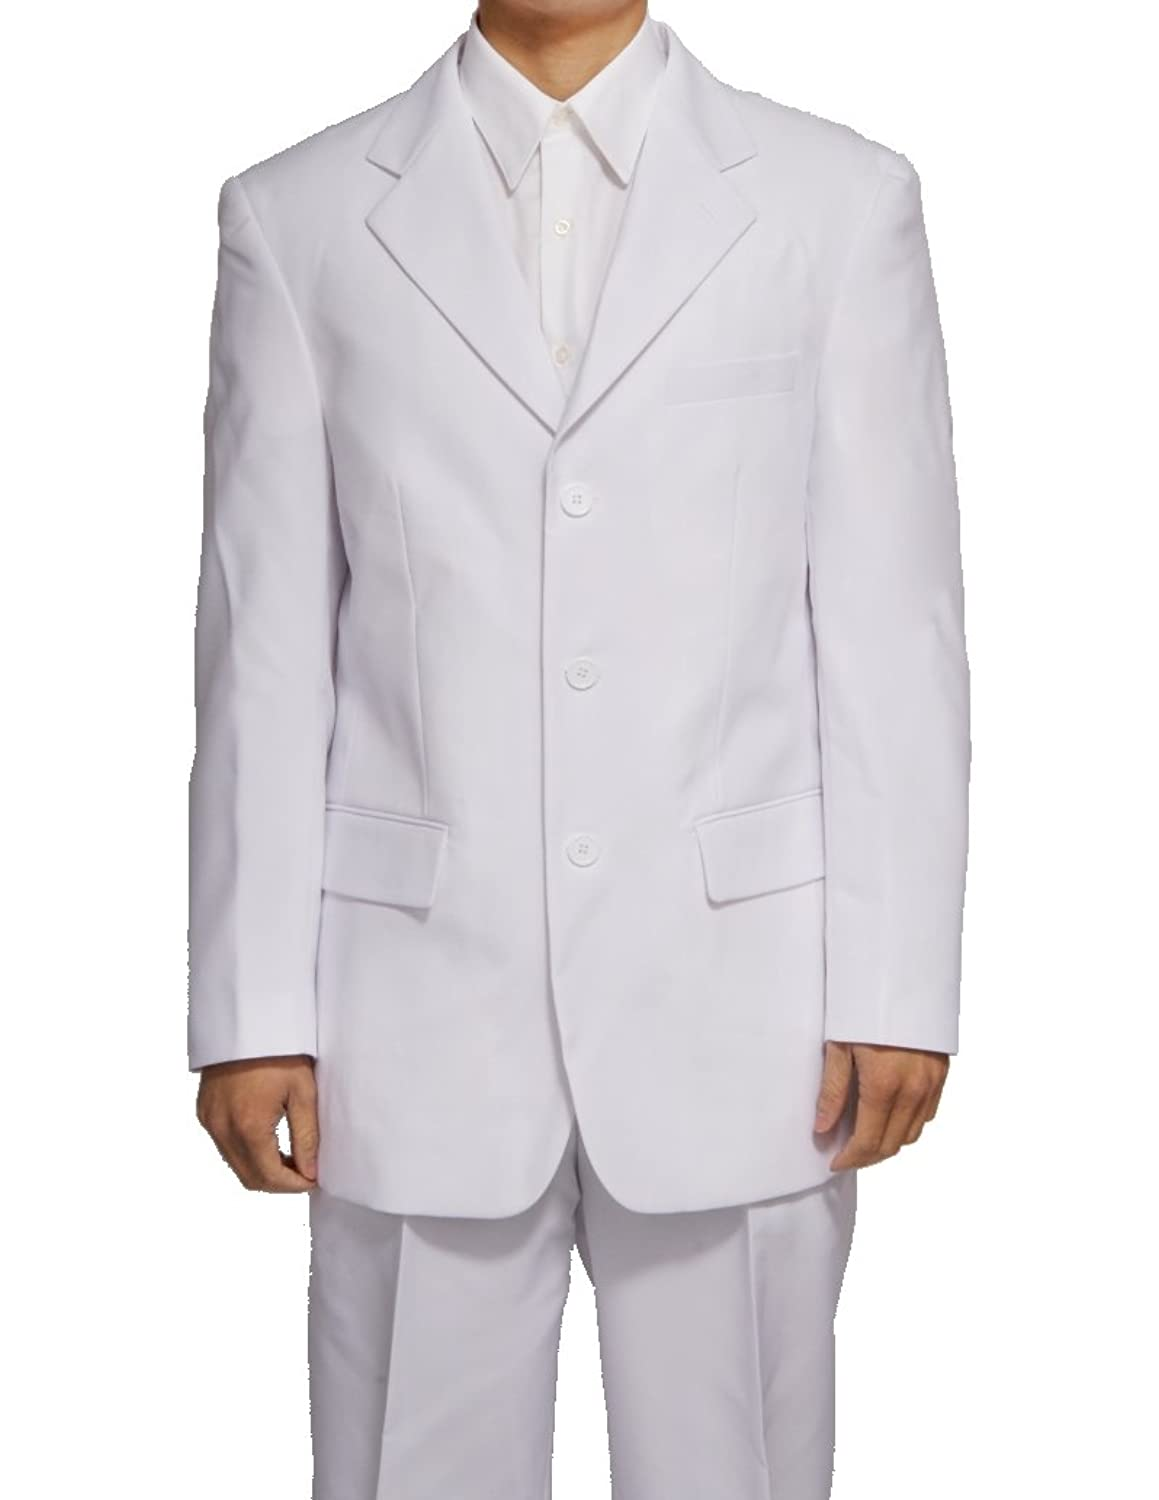 New Men's 3 Button Single Breasted White Dress Suit at Amazon ...